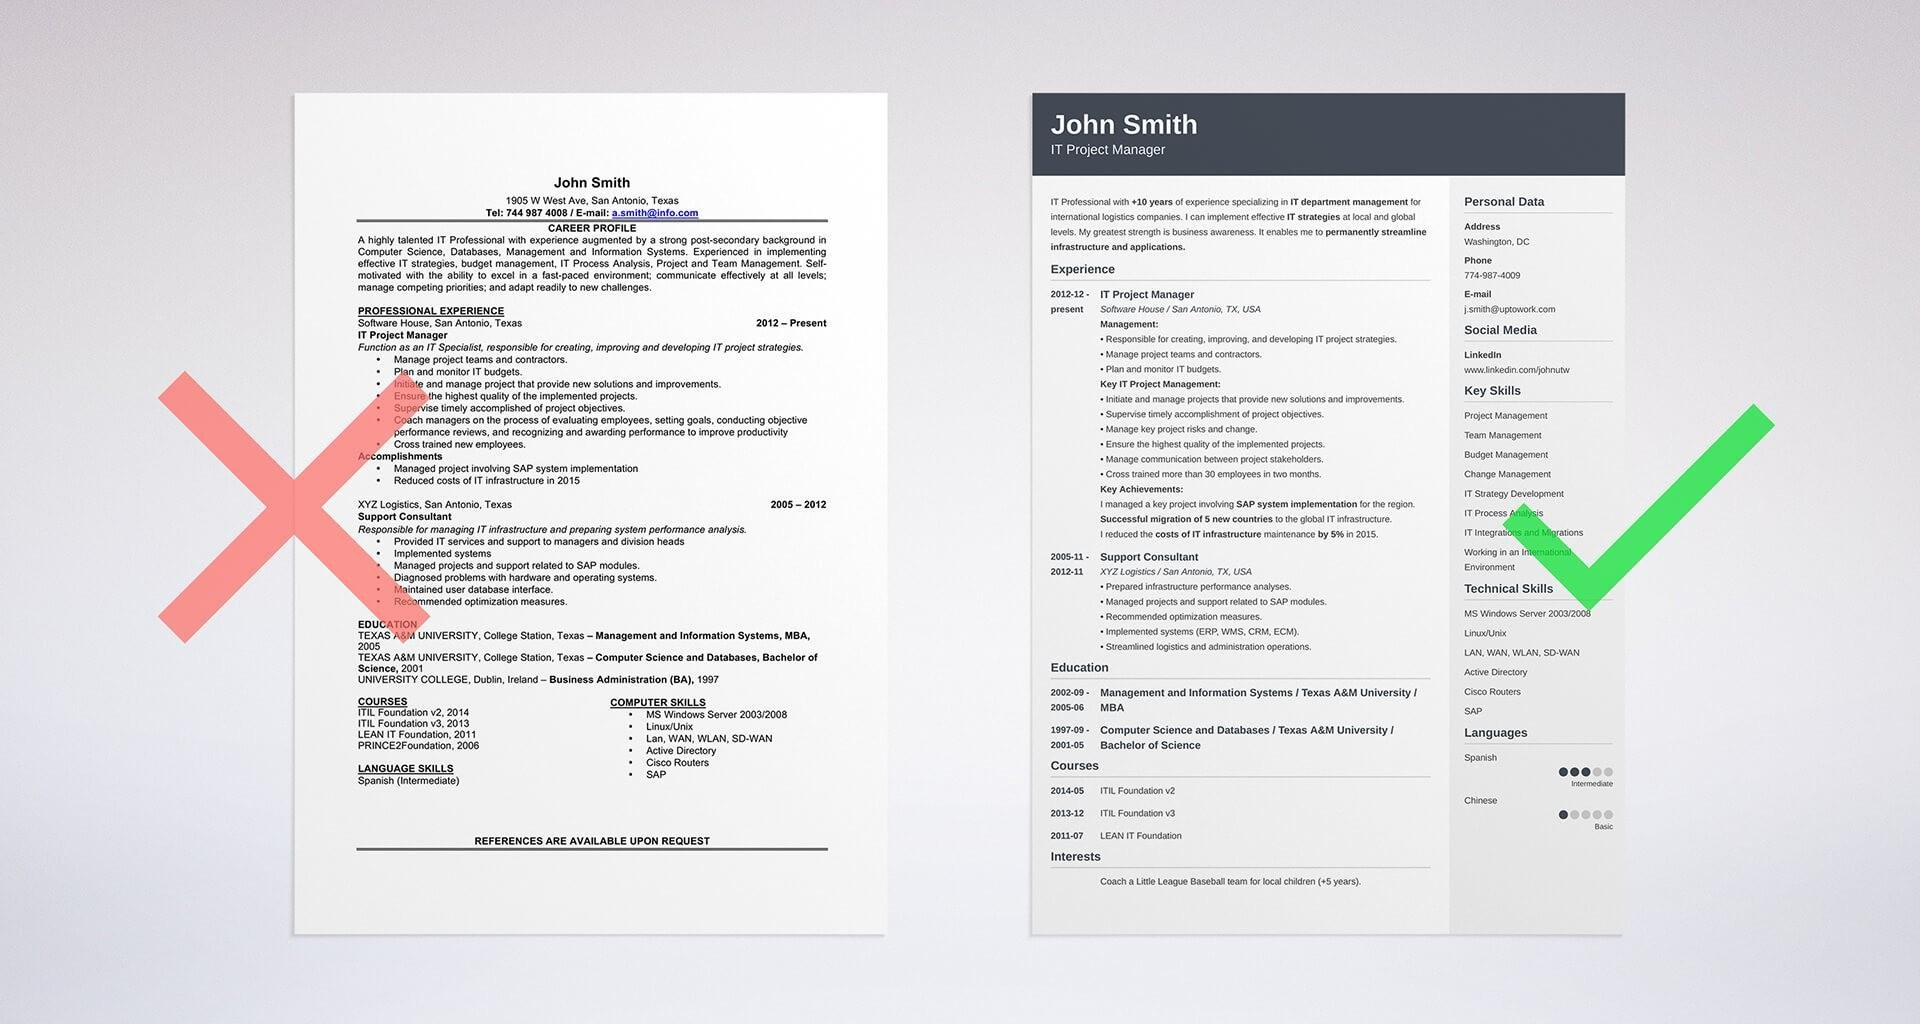 of hobbies and interests for resume cv examples another word on to put sheet computer Resume Another Word For Hobbies On Resume